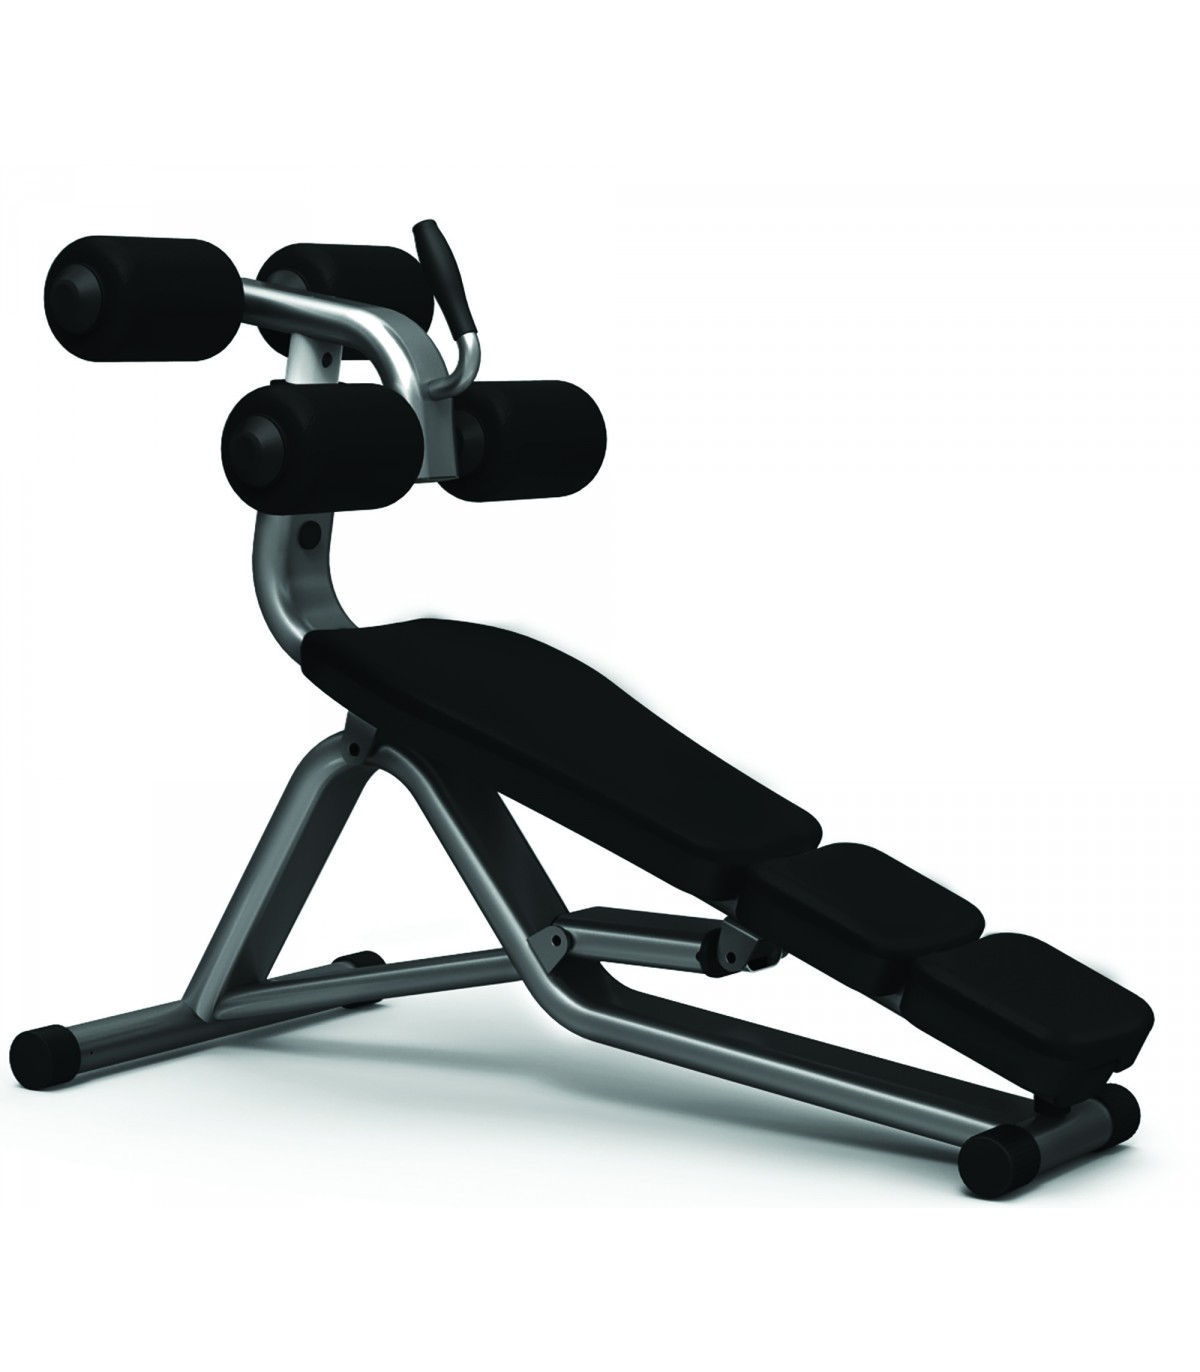 Banc De Musculation Professionnel Abdominal Care Fitness